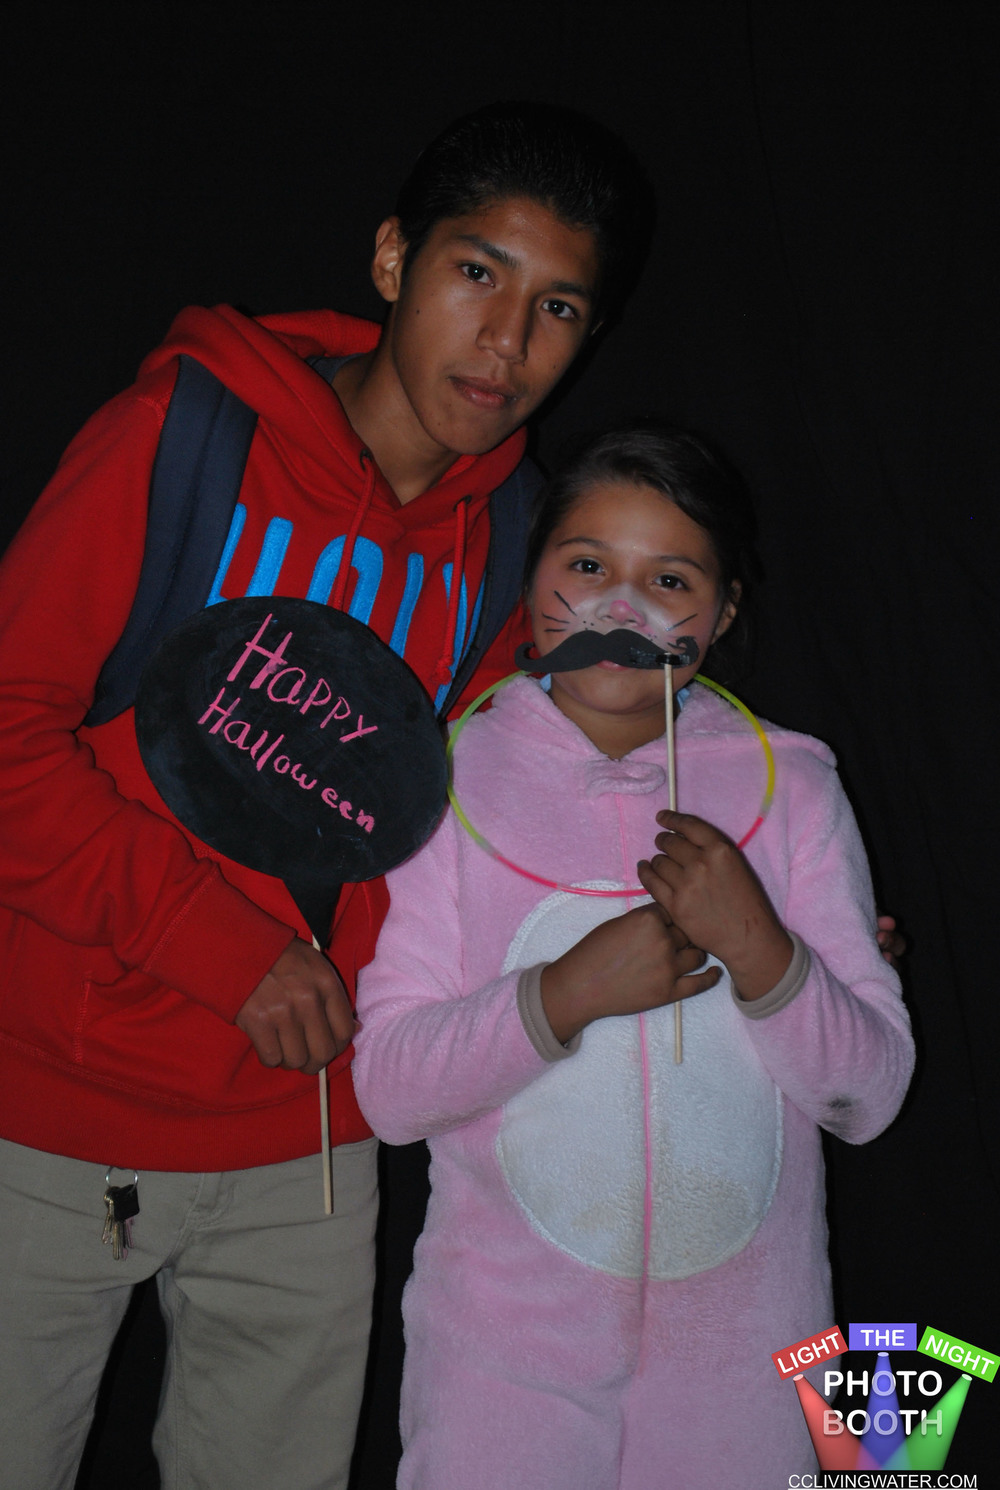 2014-10 - Light The Night Photo Booth (84) copy.jpg